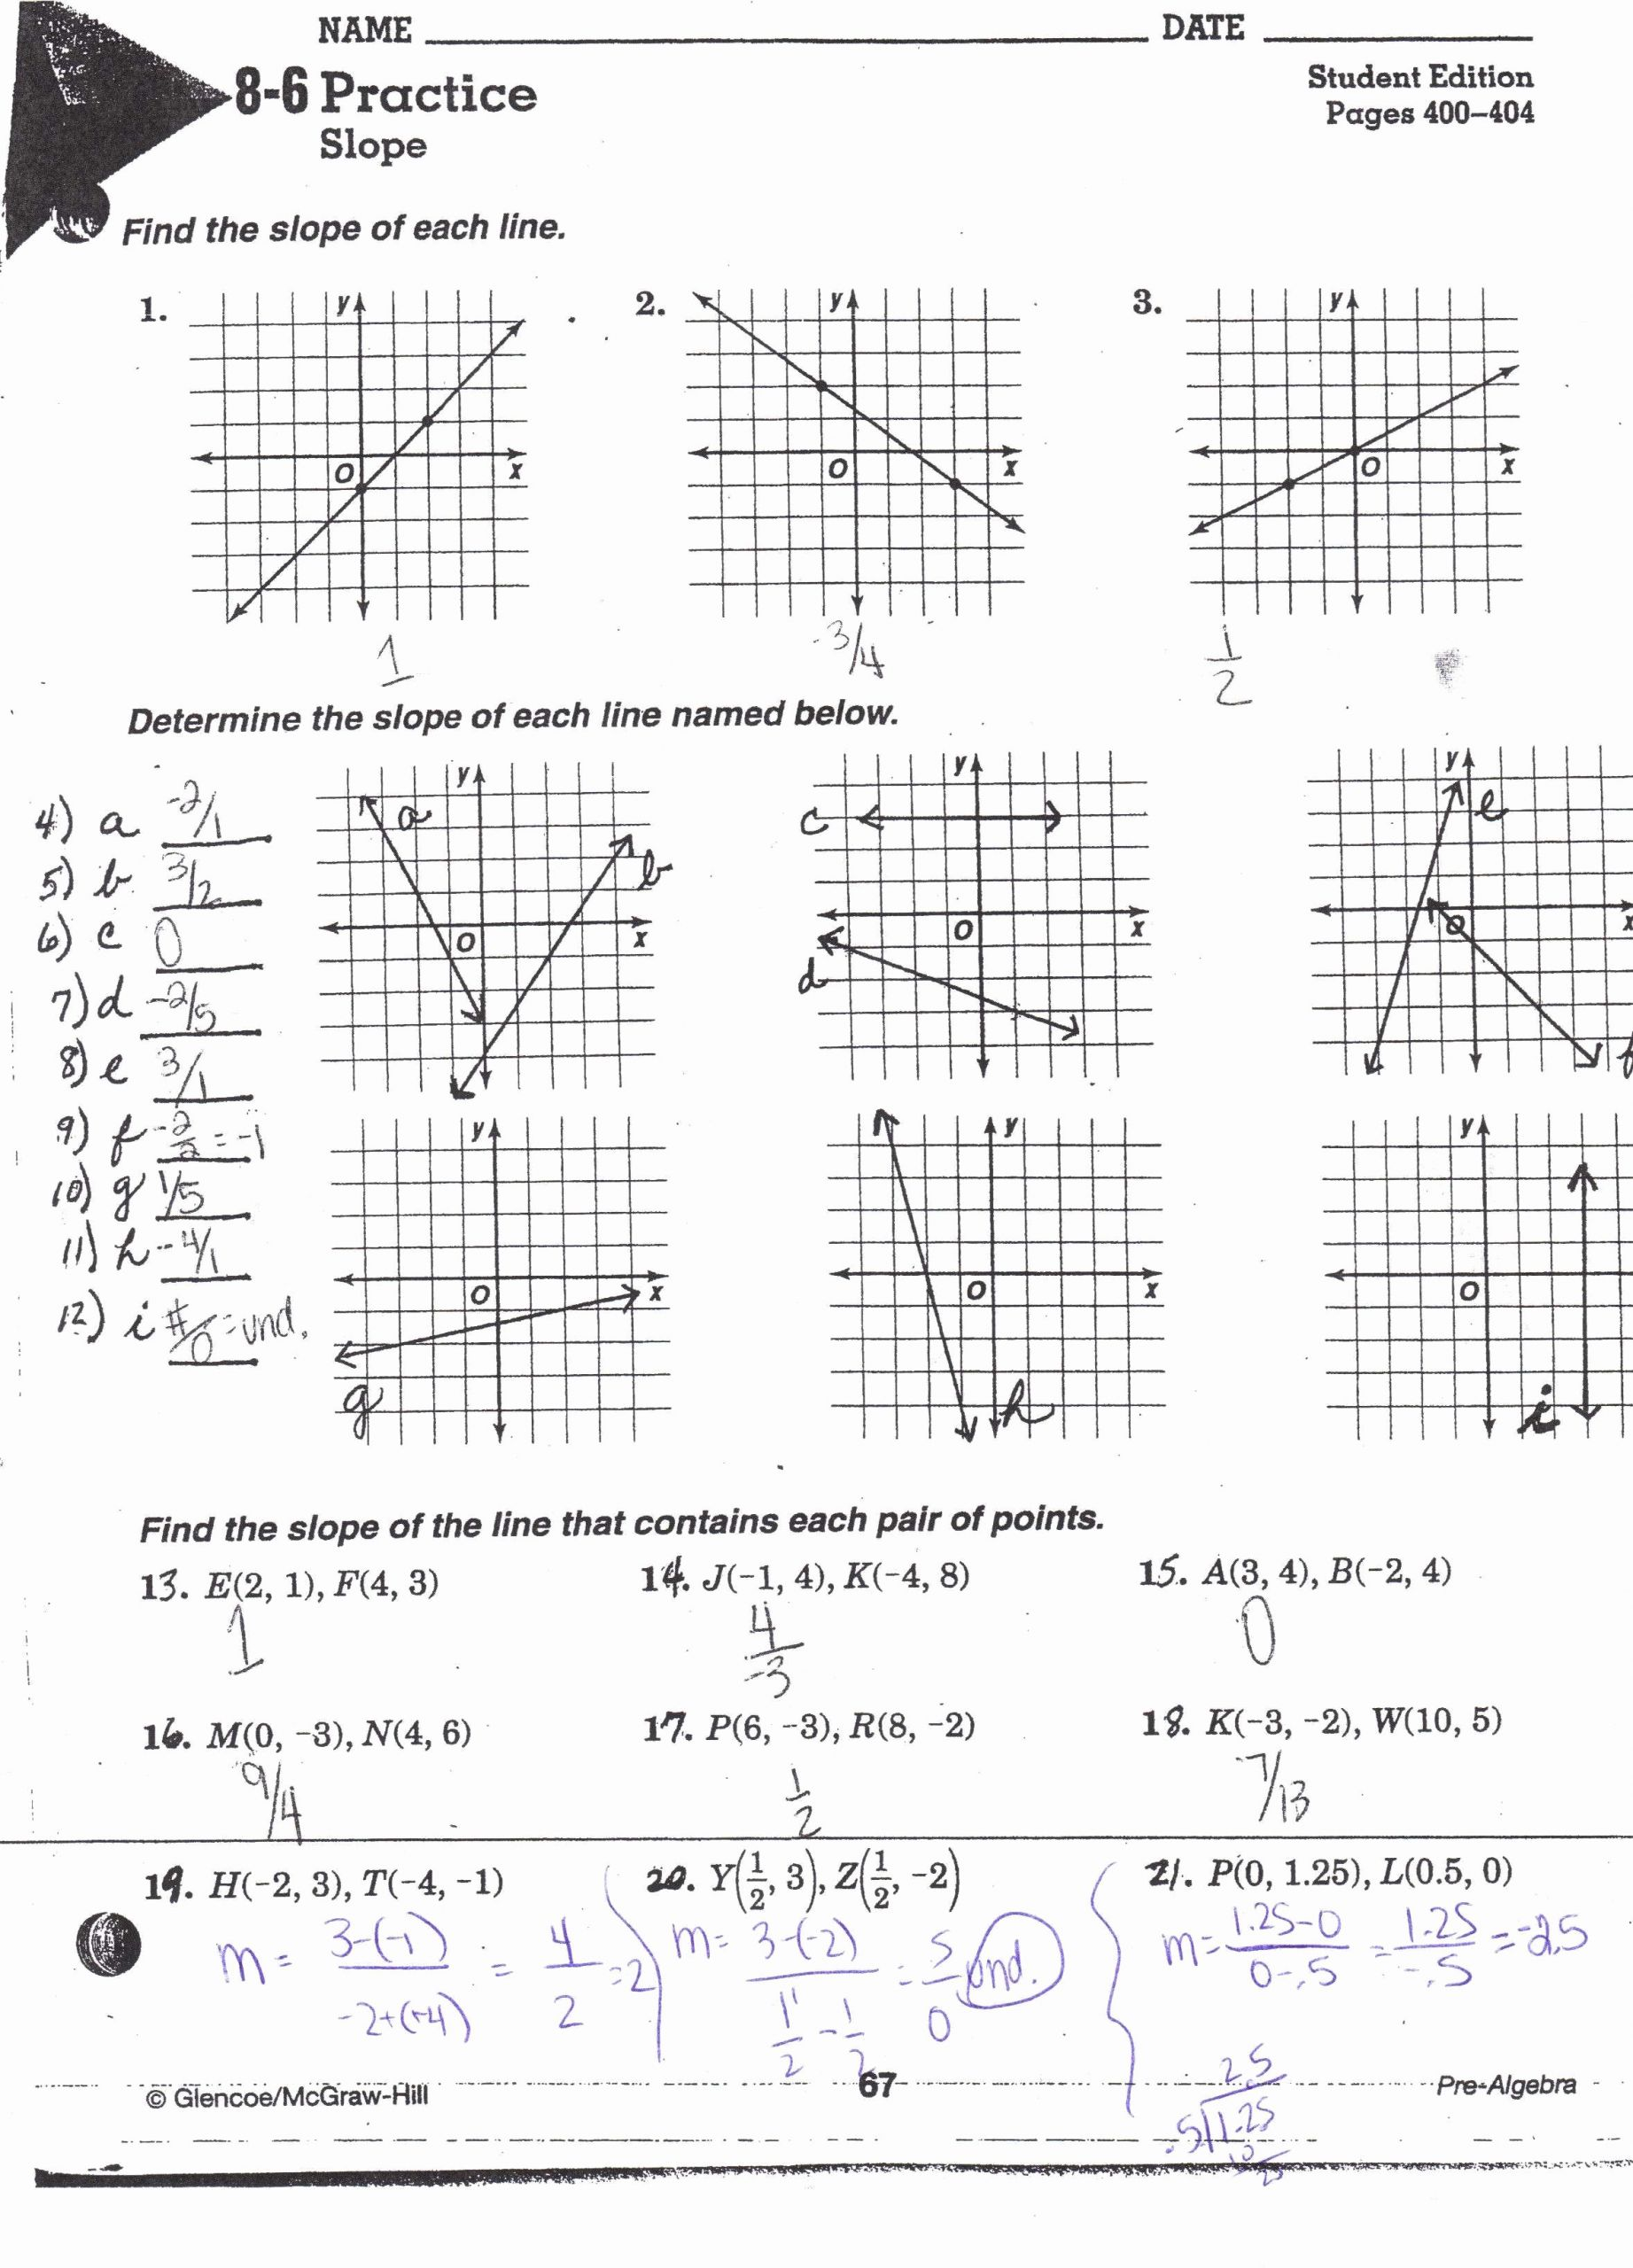 Domain and Range Graph Worksheets Best Of Domain and Range Graphs Worksheet Answers Worksheet